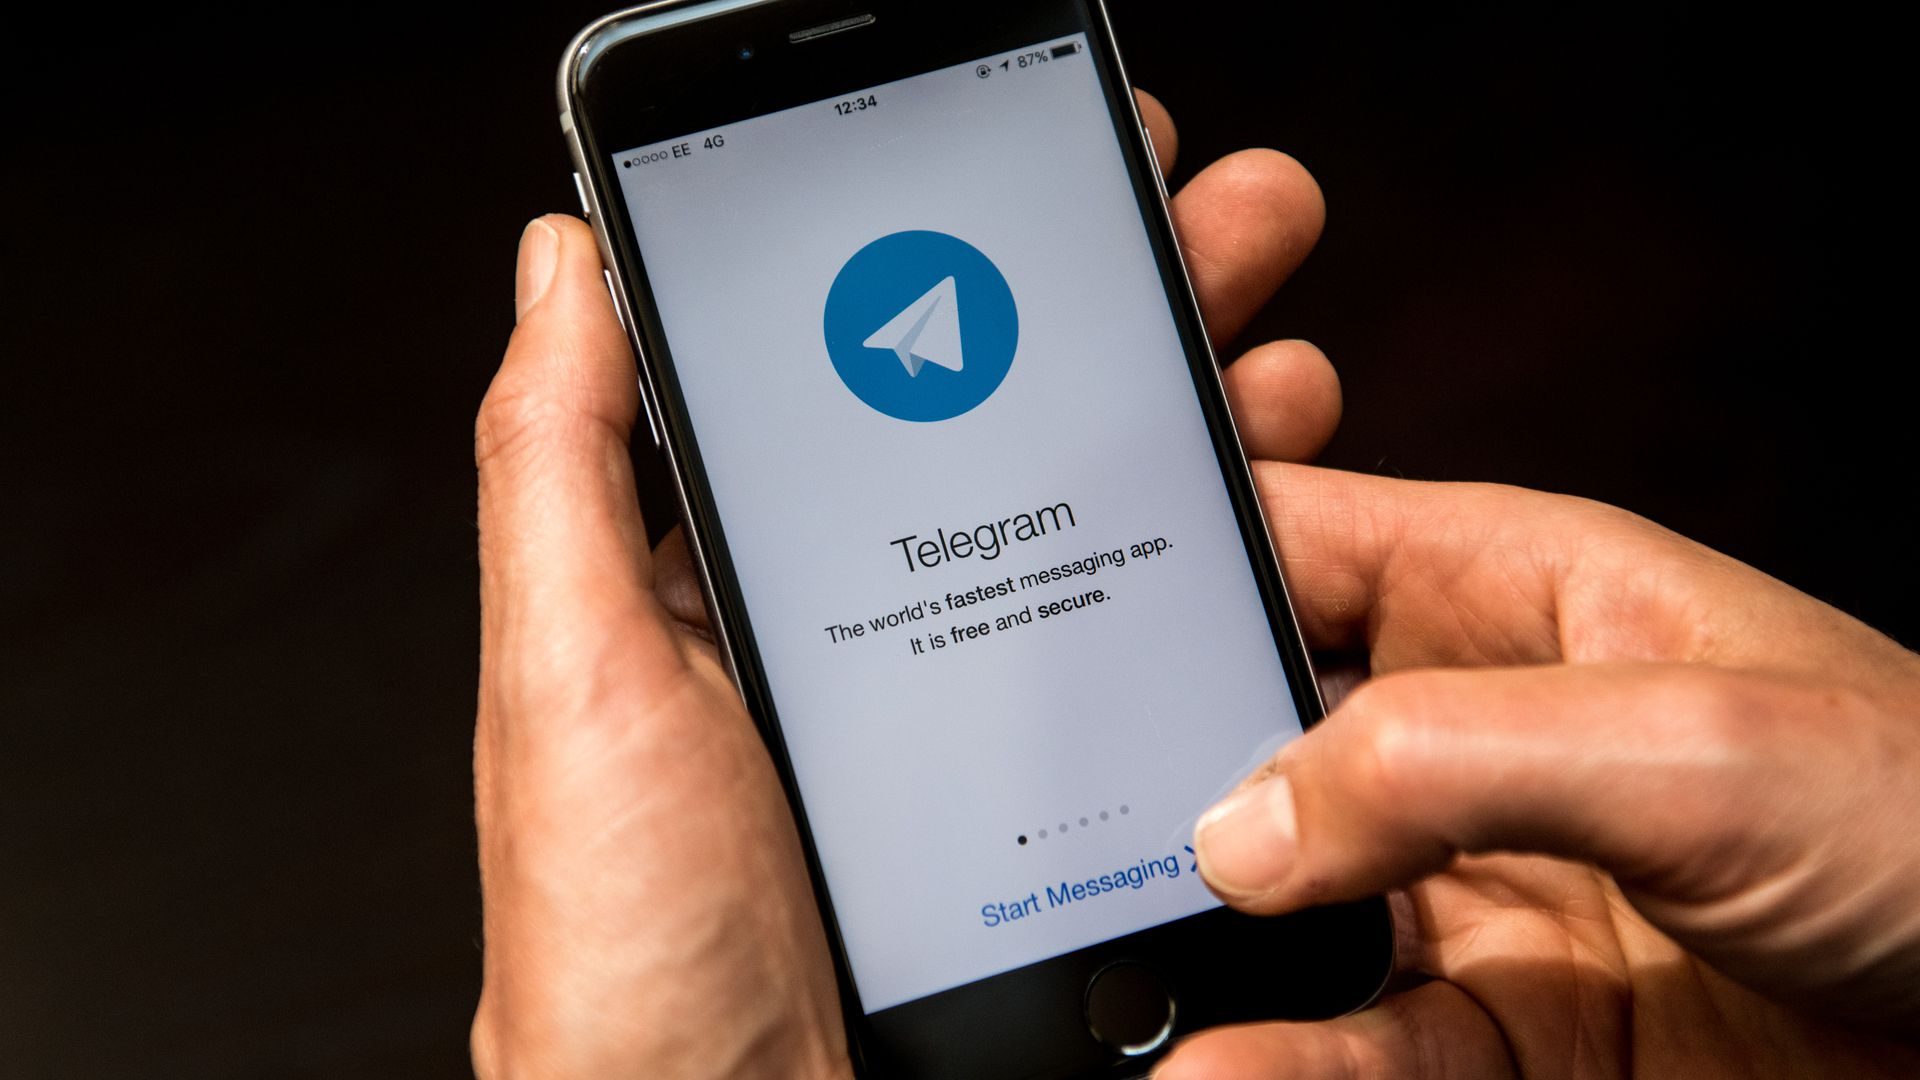 A close-up view of the Telegram messaging app is seen on a smart phone